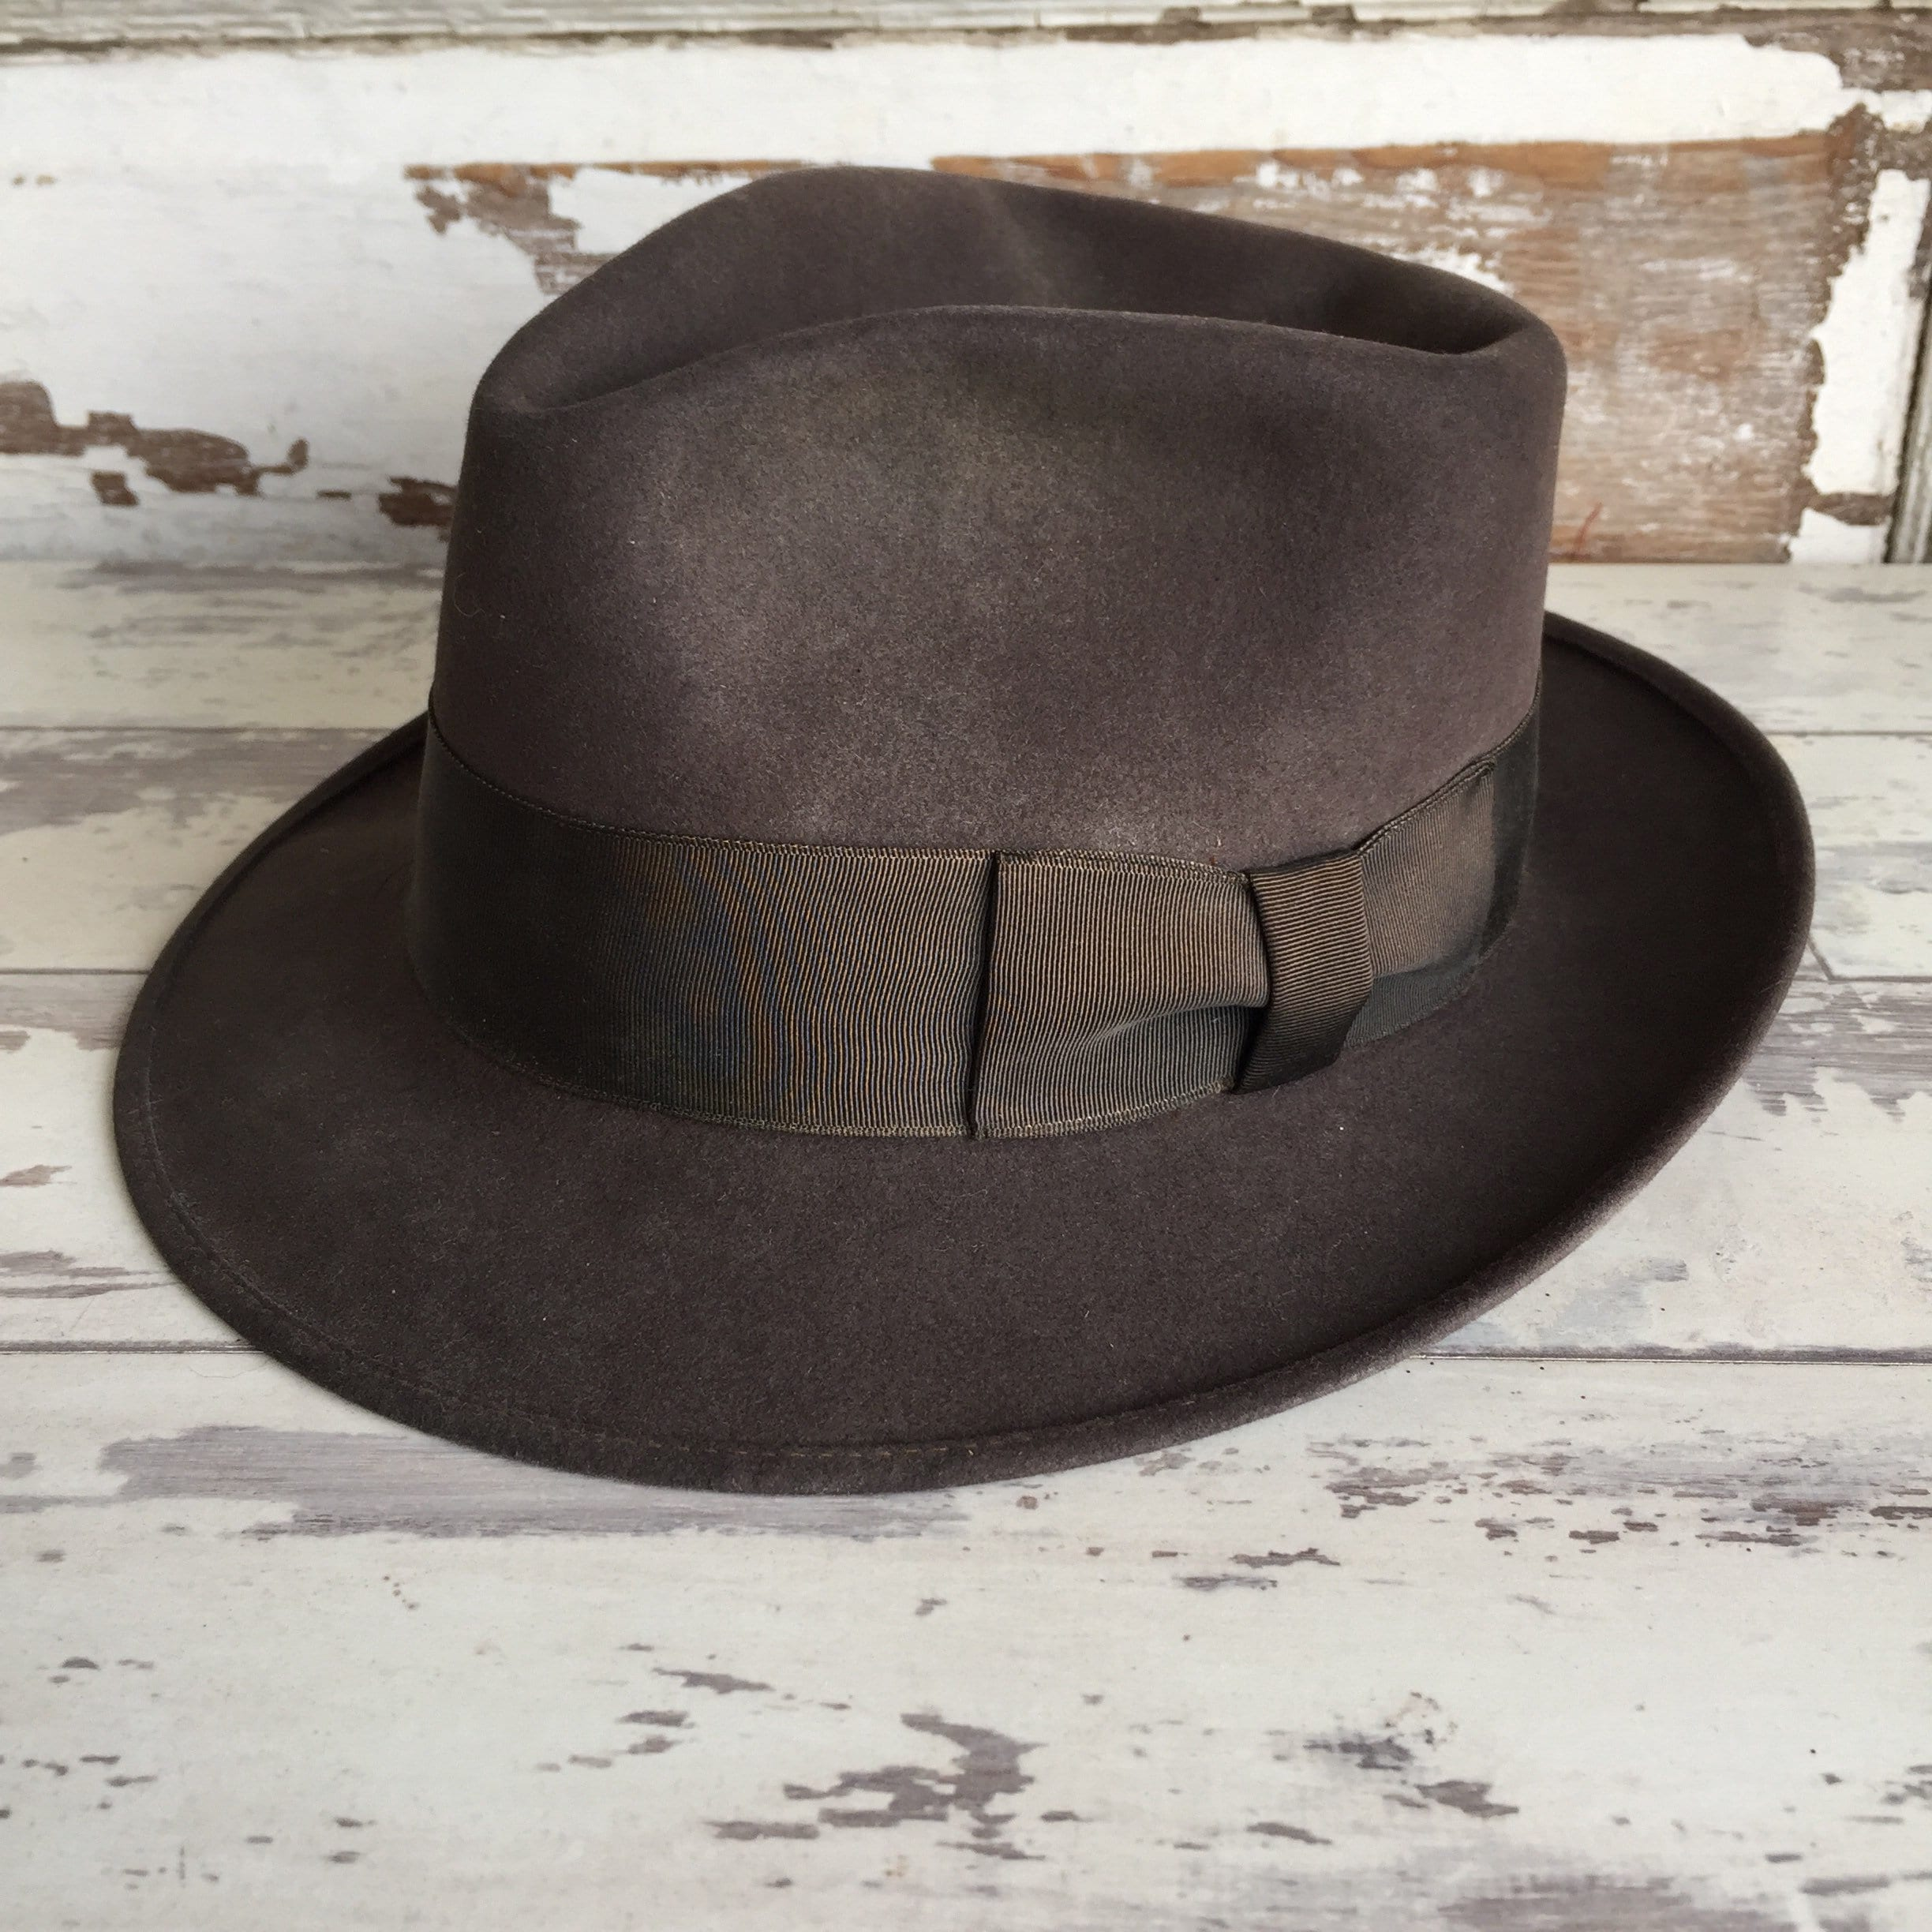 fd748077d56e1 Vintage Hat and Box Hatbox Royal Stetson Fedora Indiana